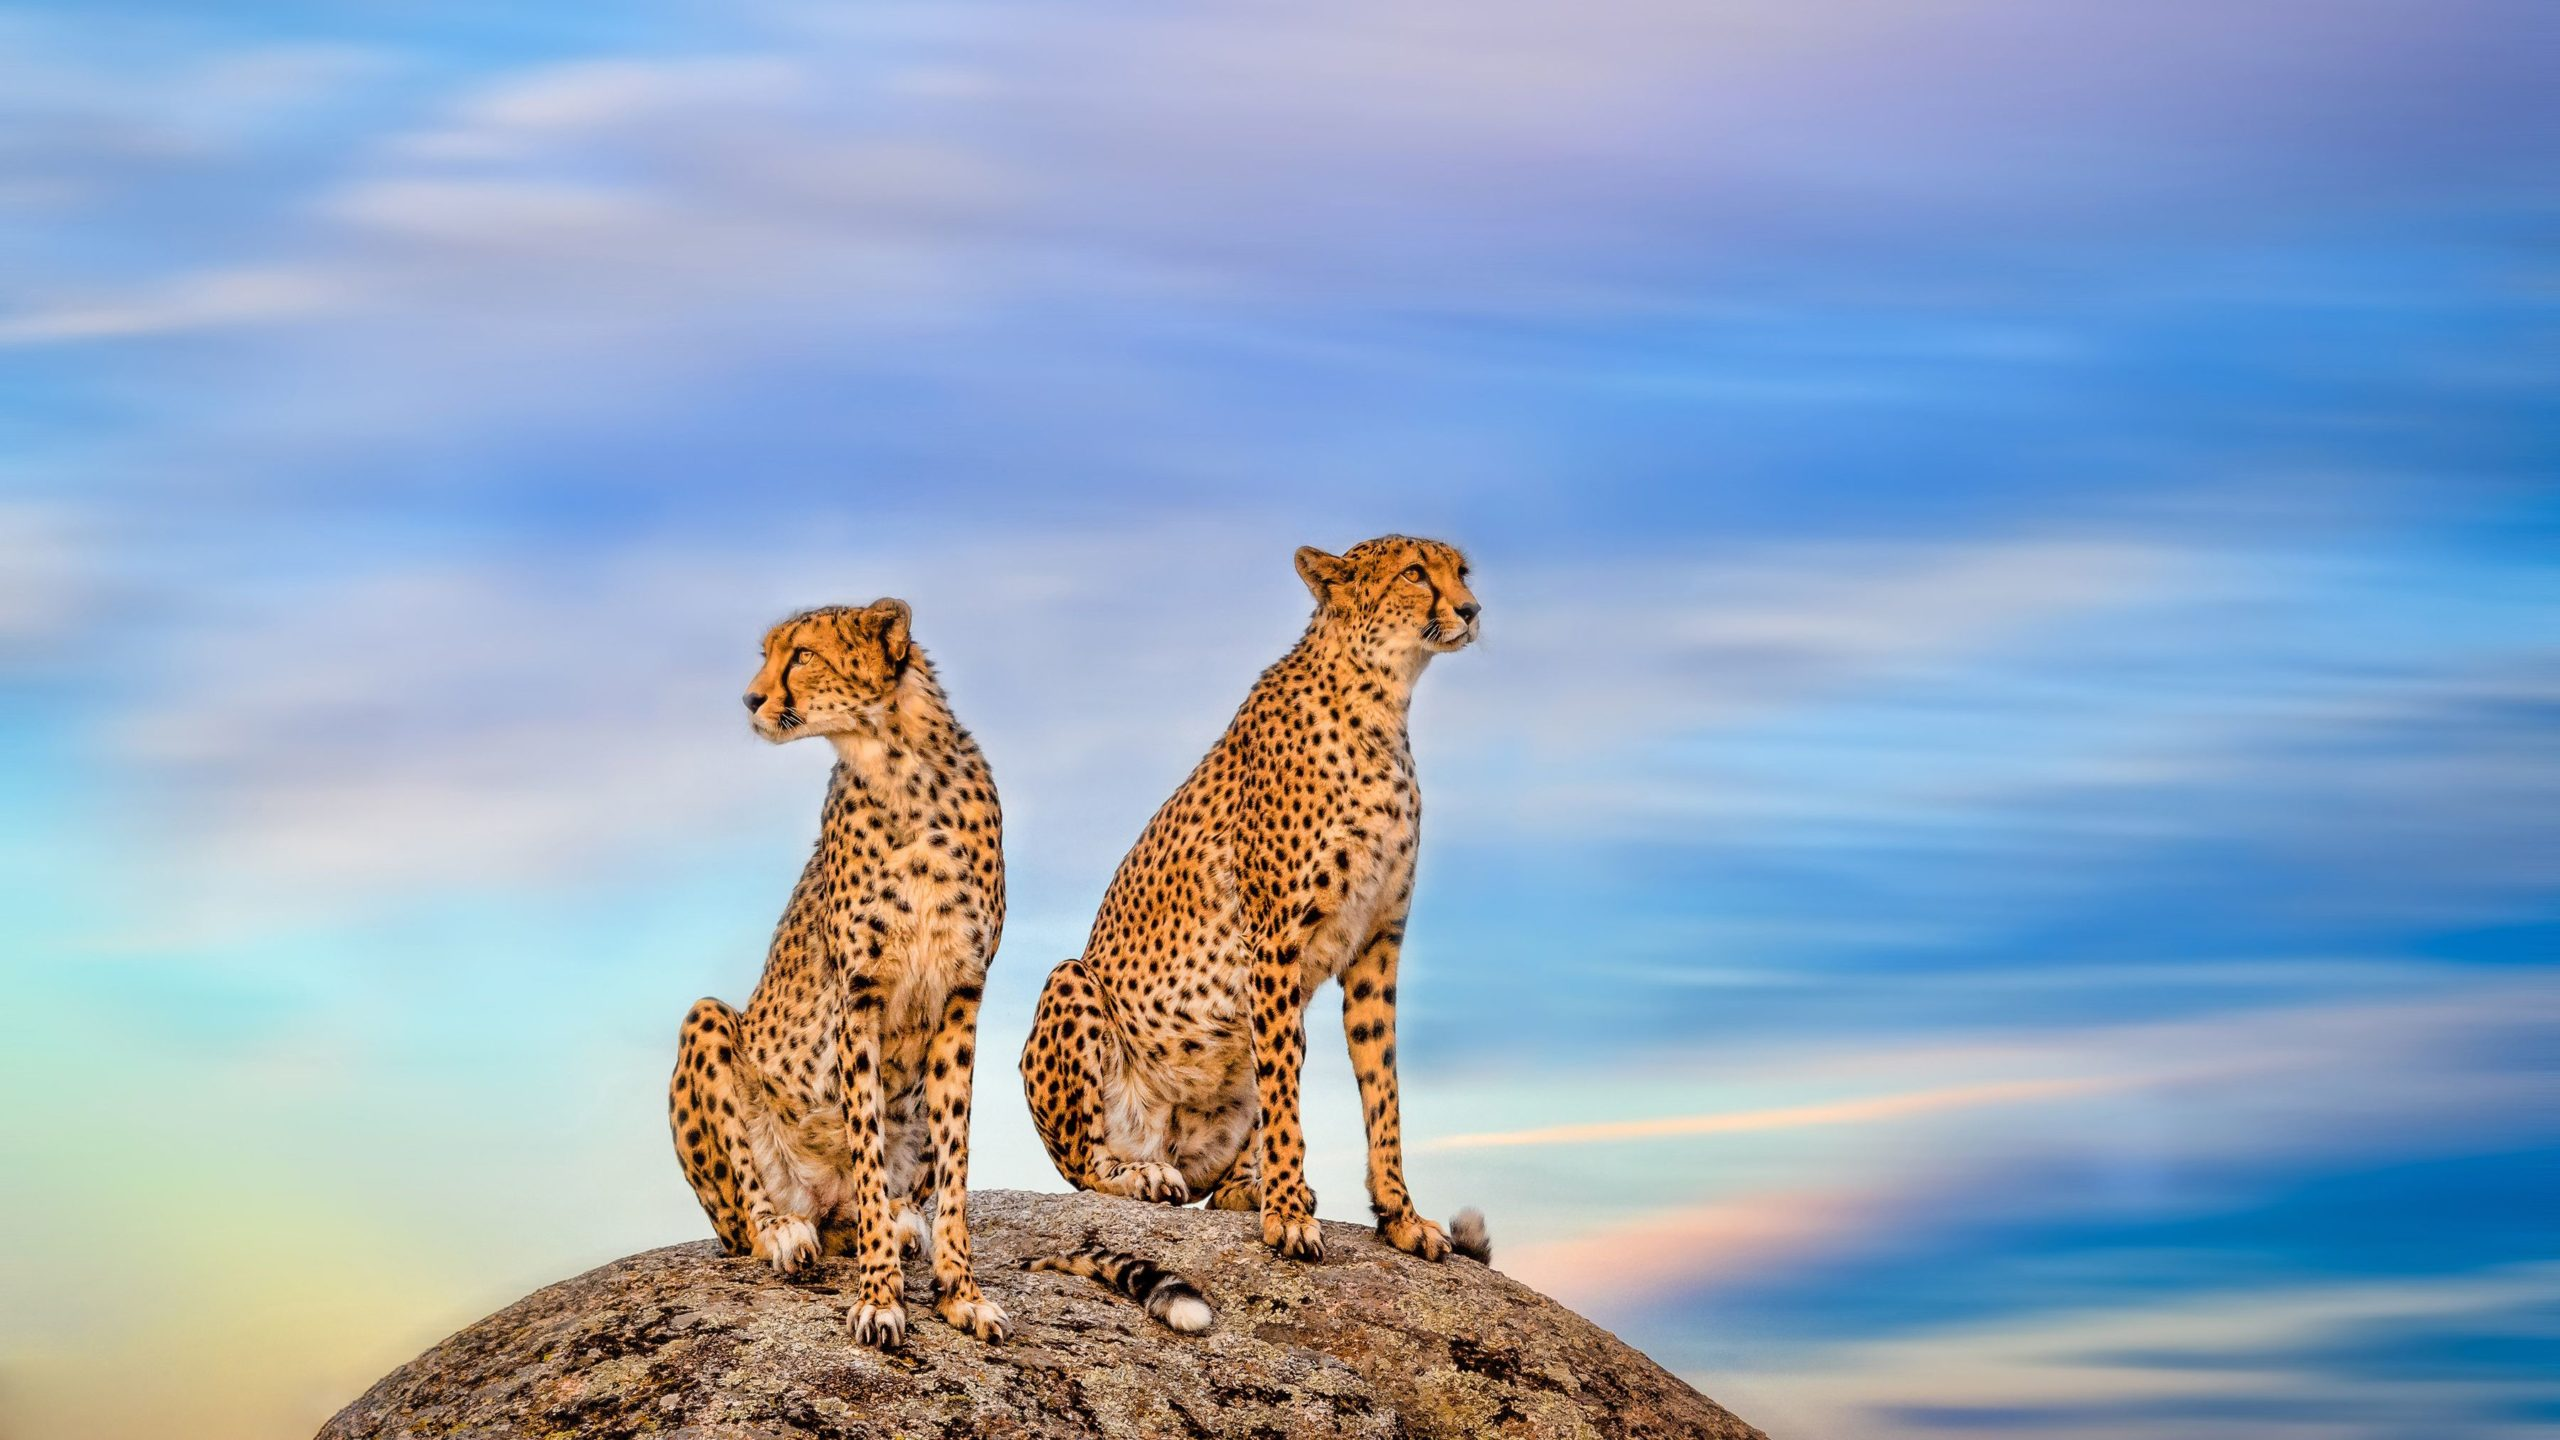 pitures of cheetahs